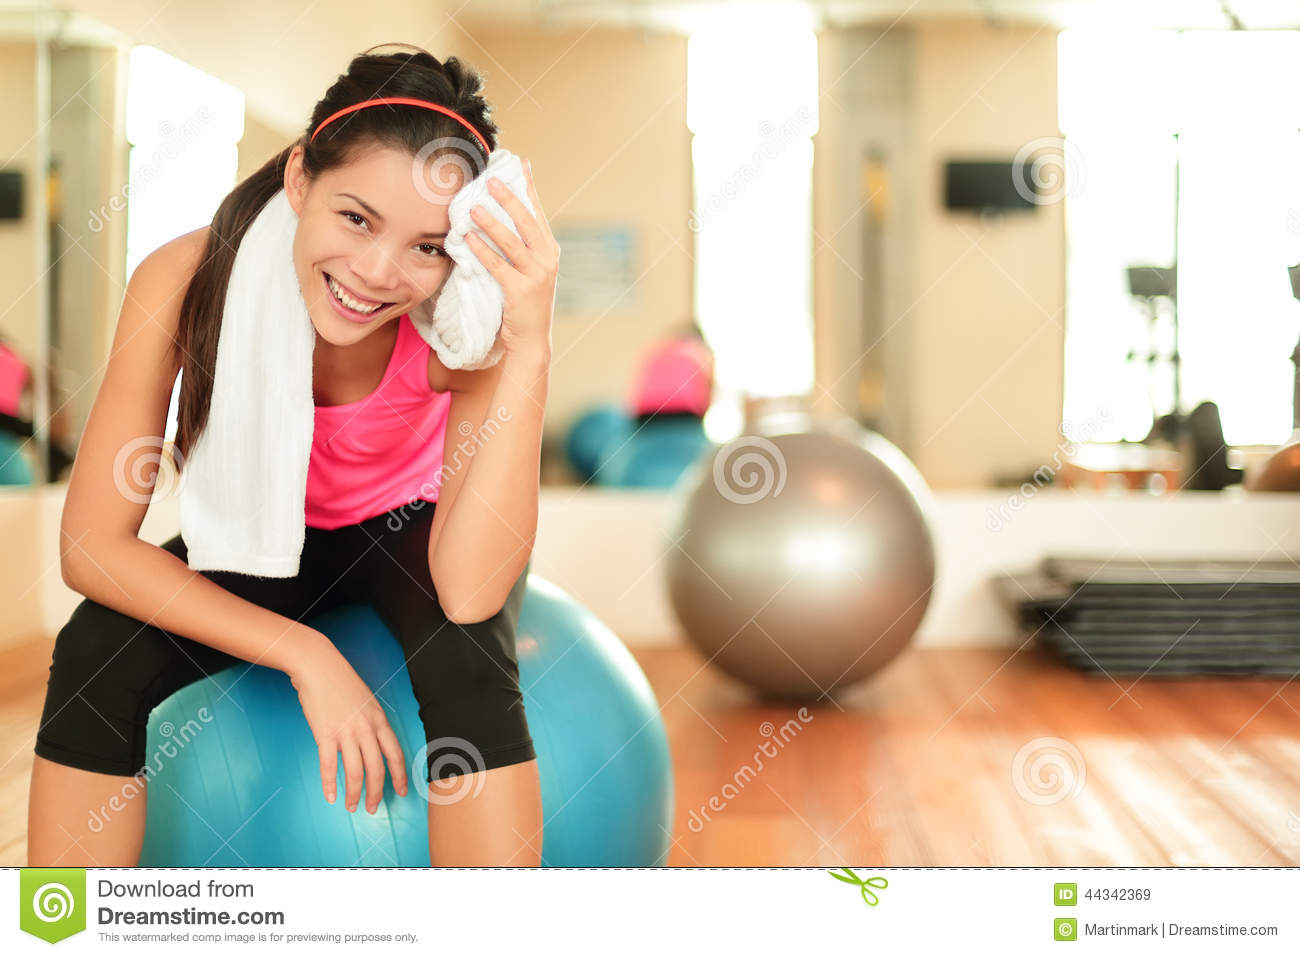 ec8298880ea Fitness woman in gym. Resting on pilates ball   exercise ball sweating  using towel relaxing